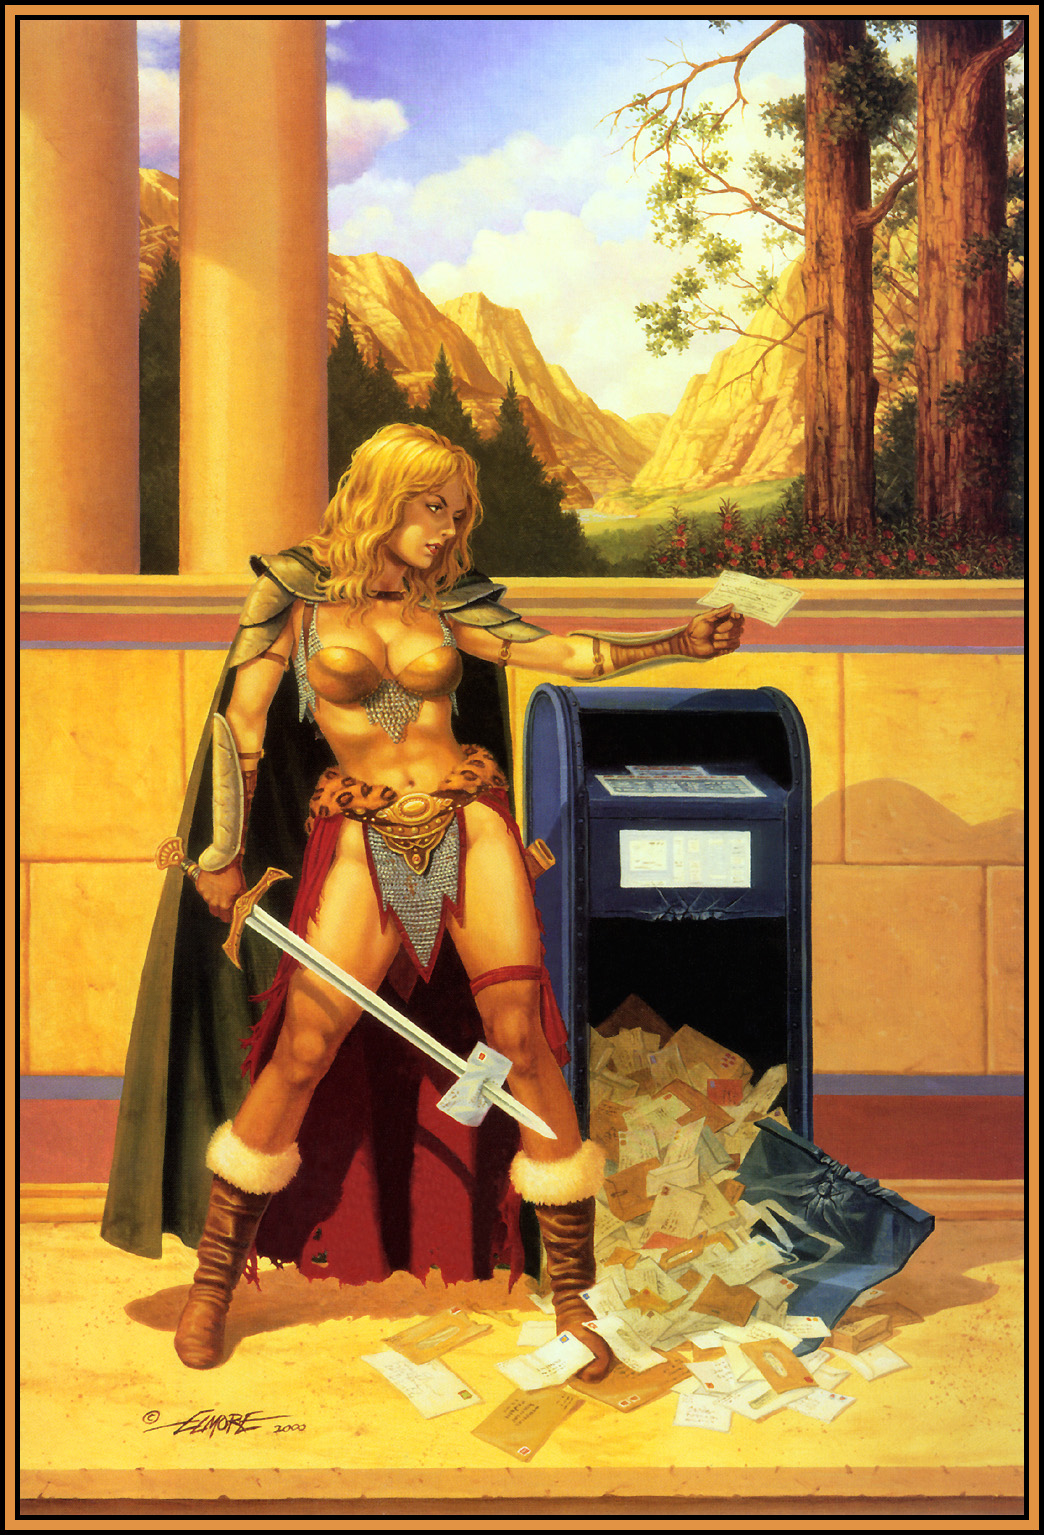 20360621-Elmore_Larry_117_The_Chick_Is_In_The_Mail[1]